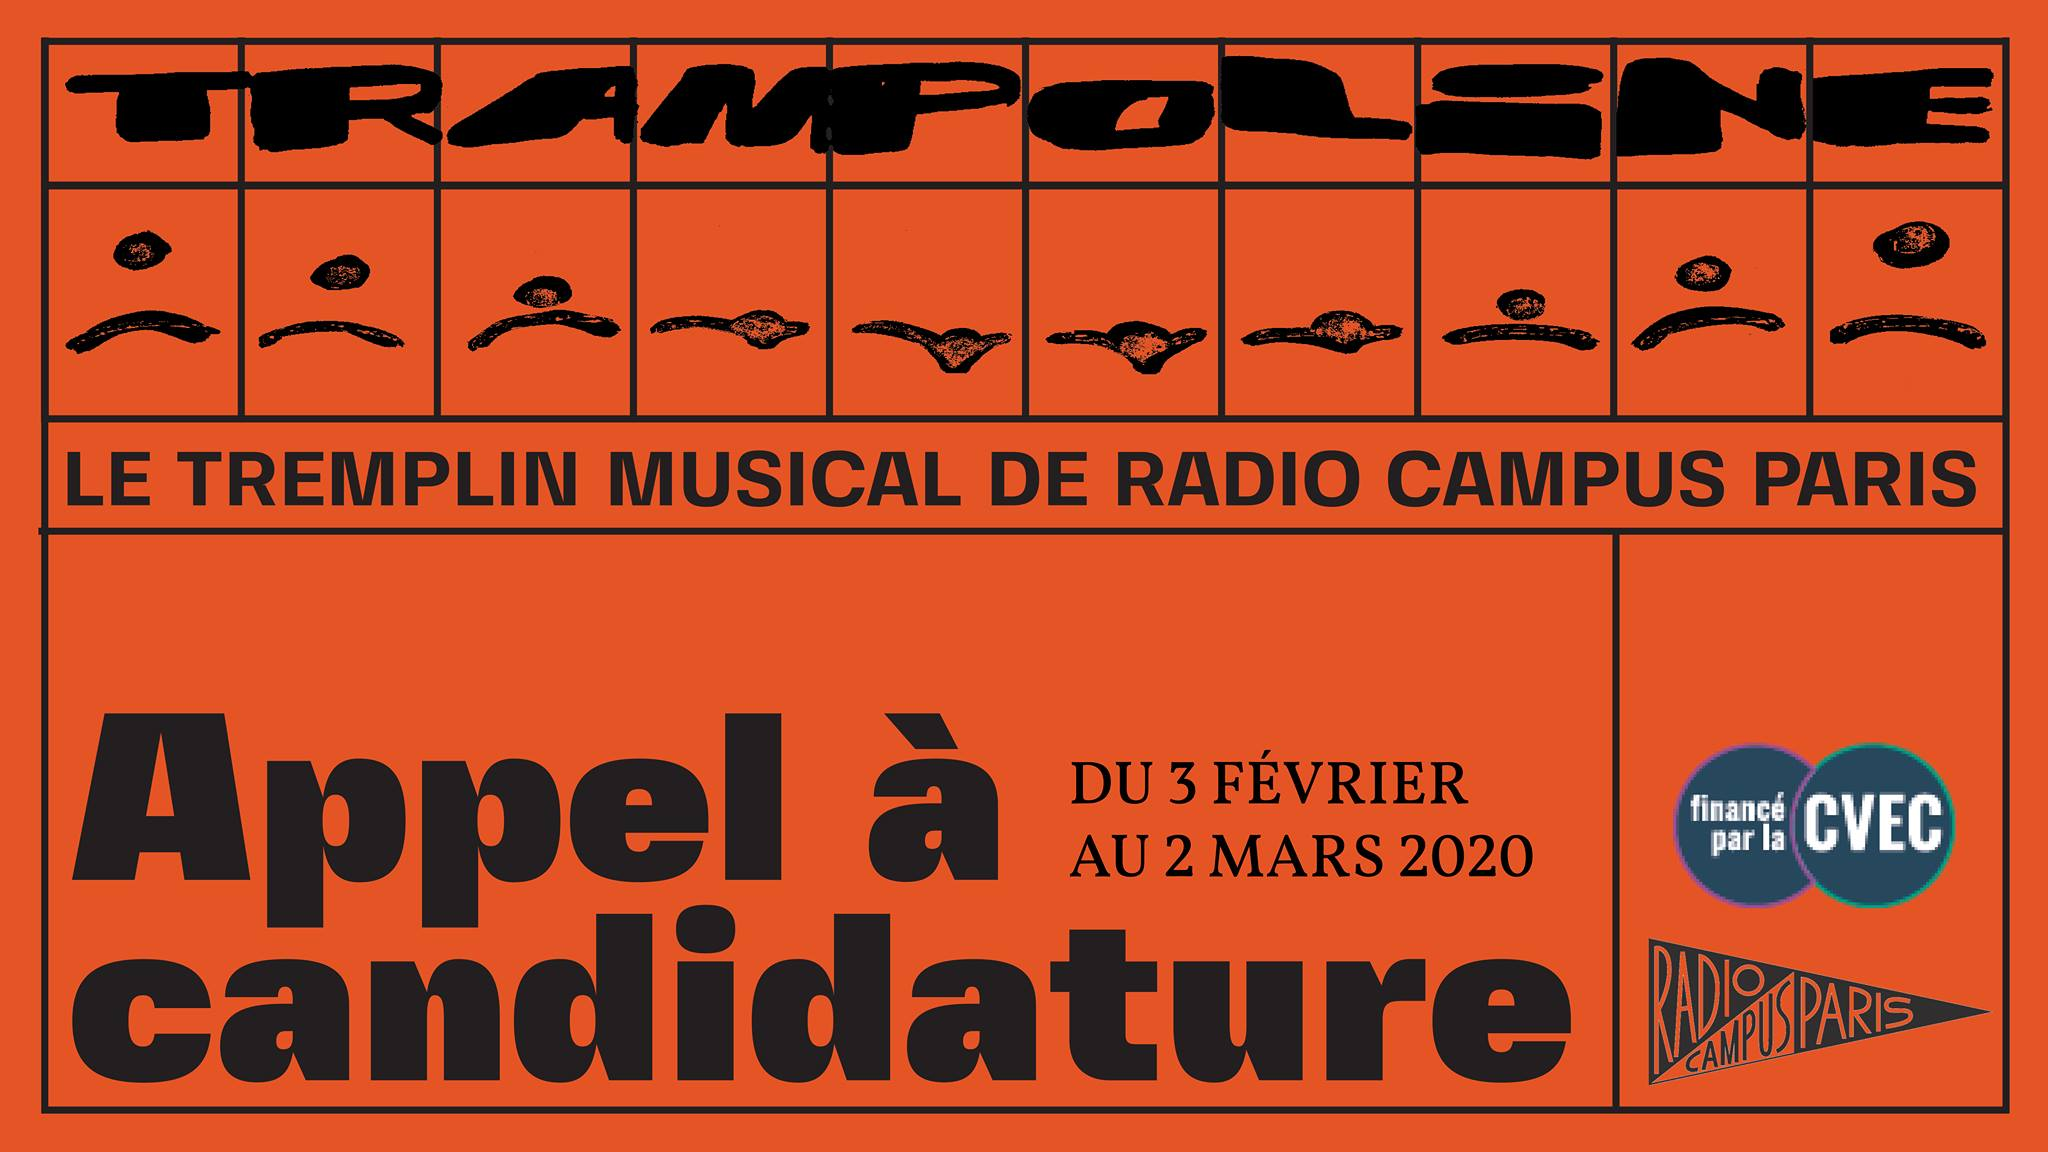 Trampoline – Tremplin Musical de Radio Campus Paris